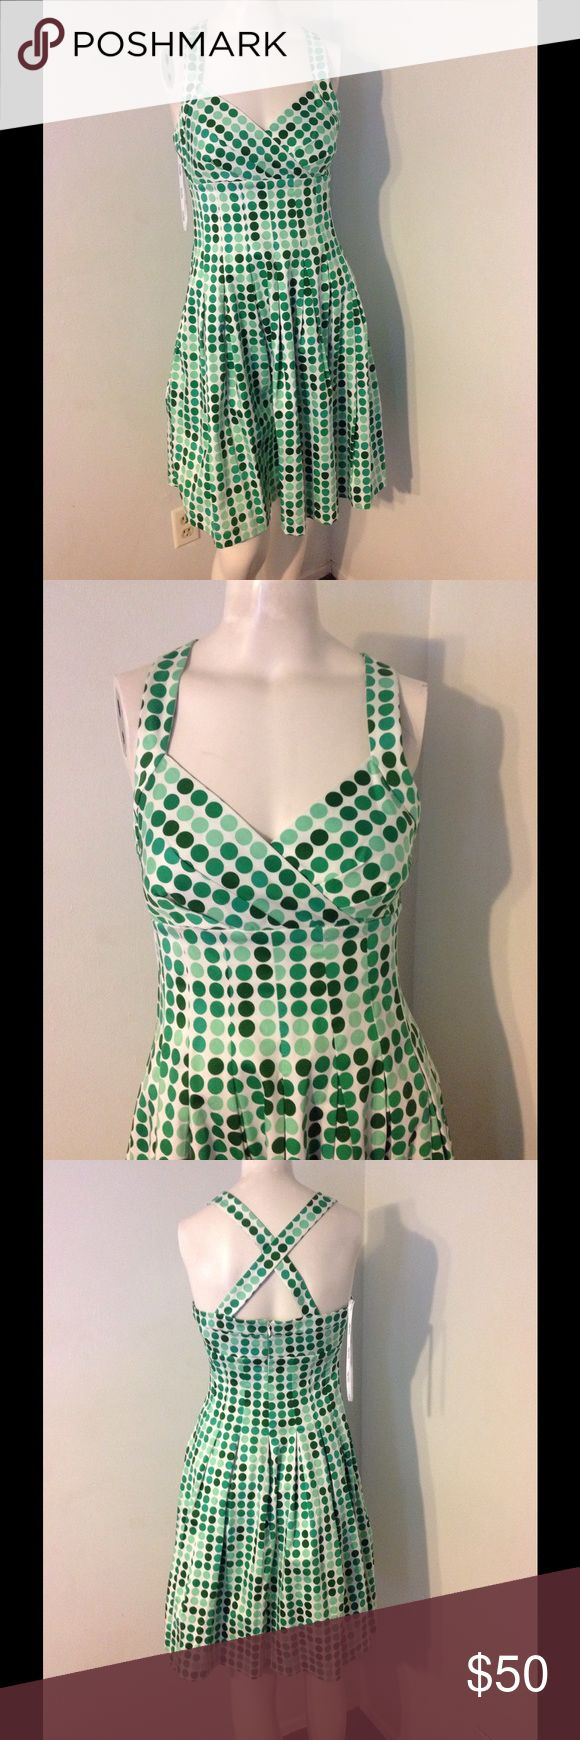 Calvin Klein Green Polka Dot Retro Style Dress 2 Super cute dress! Calvin Klein retro style fit and flare. Green polka dot cotton/spandex so it has some stretch. Brand new with tags. Calvin Klein Dresses